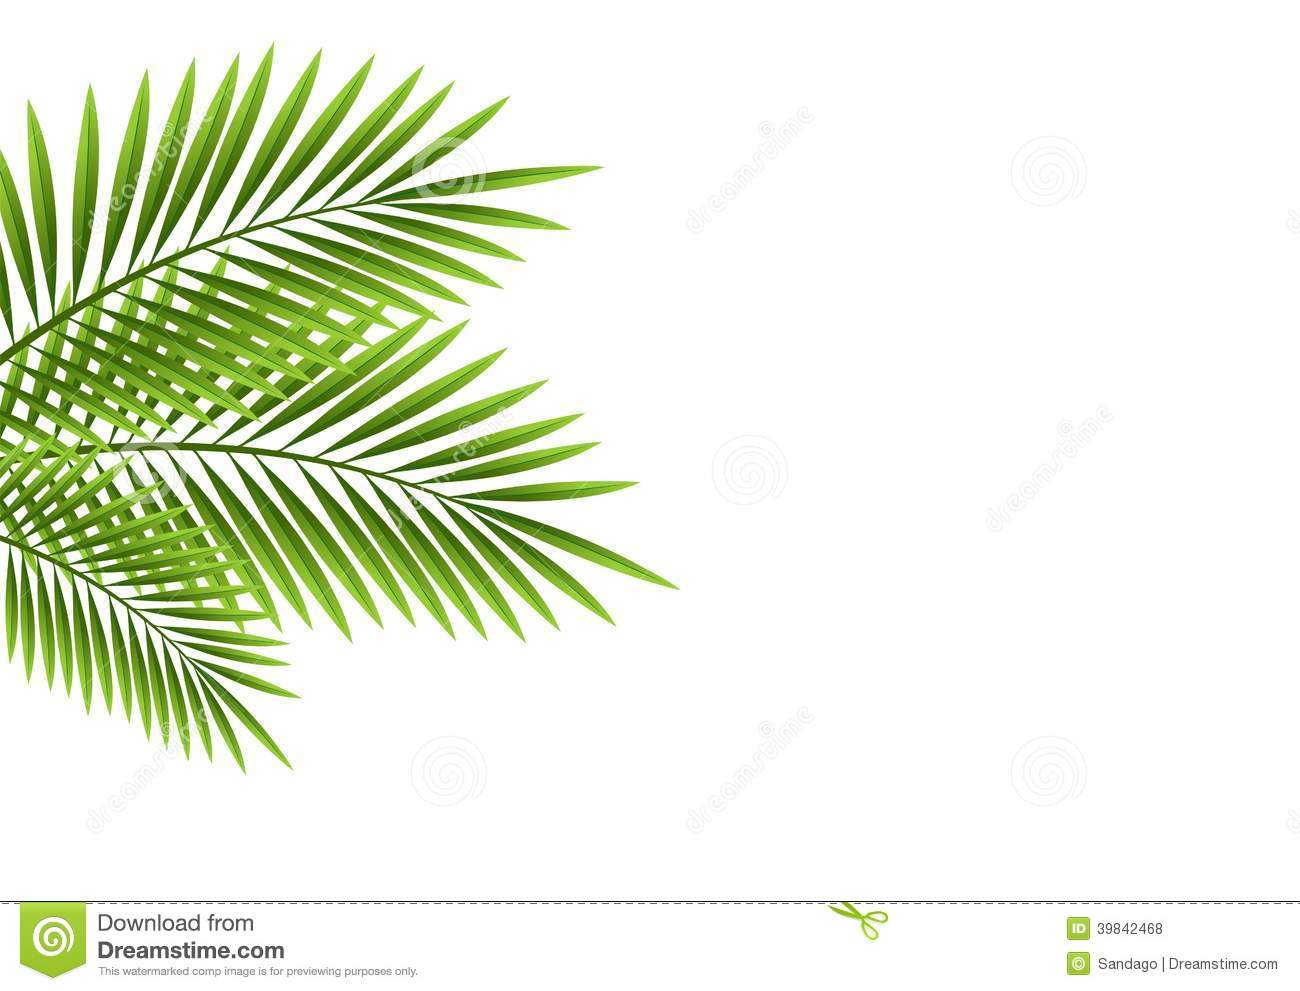 Iphone X Frame Wallpaper Palm Leaves Stock Vector Illustration Of Bright Object